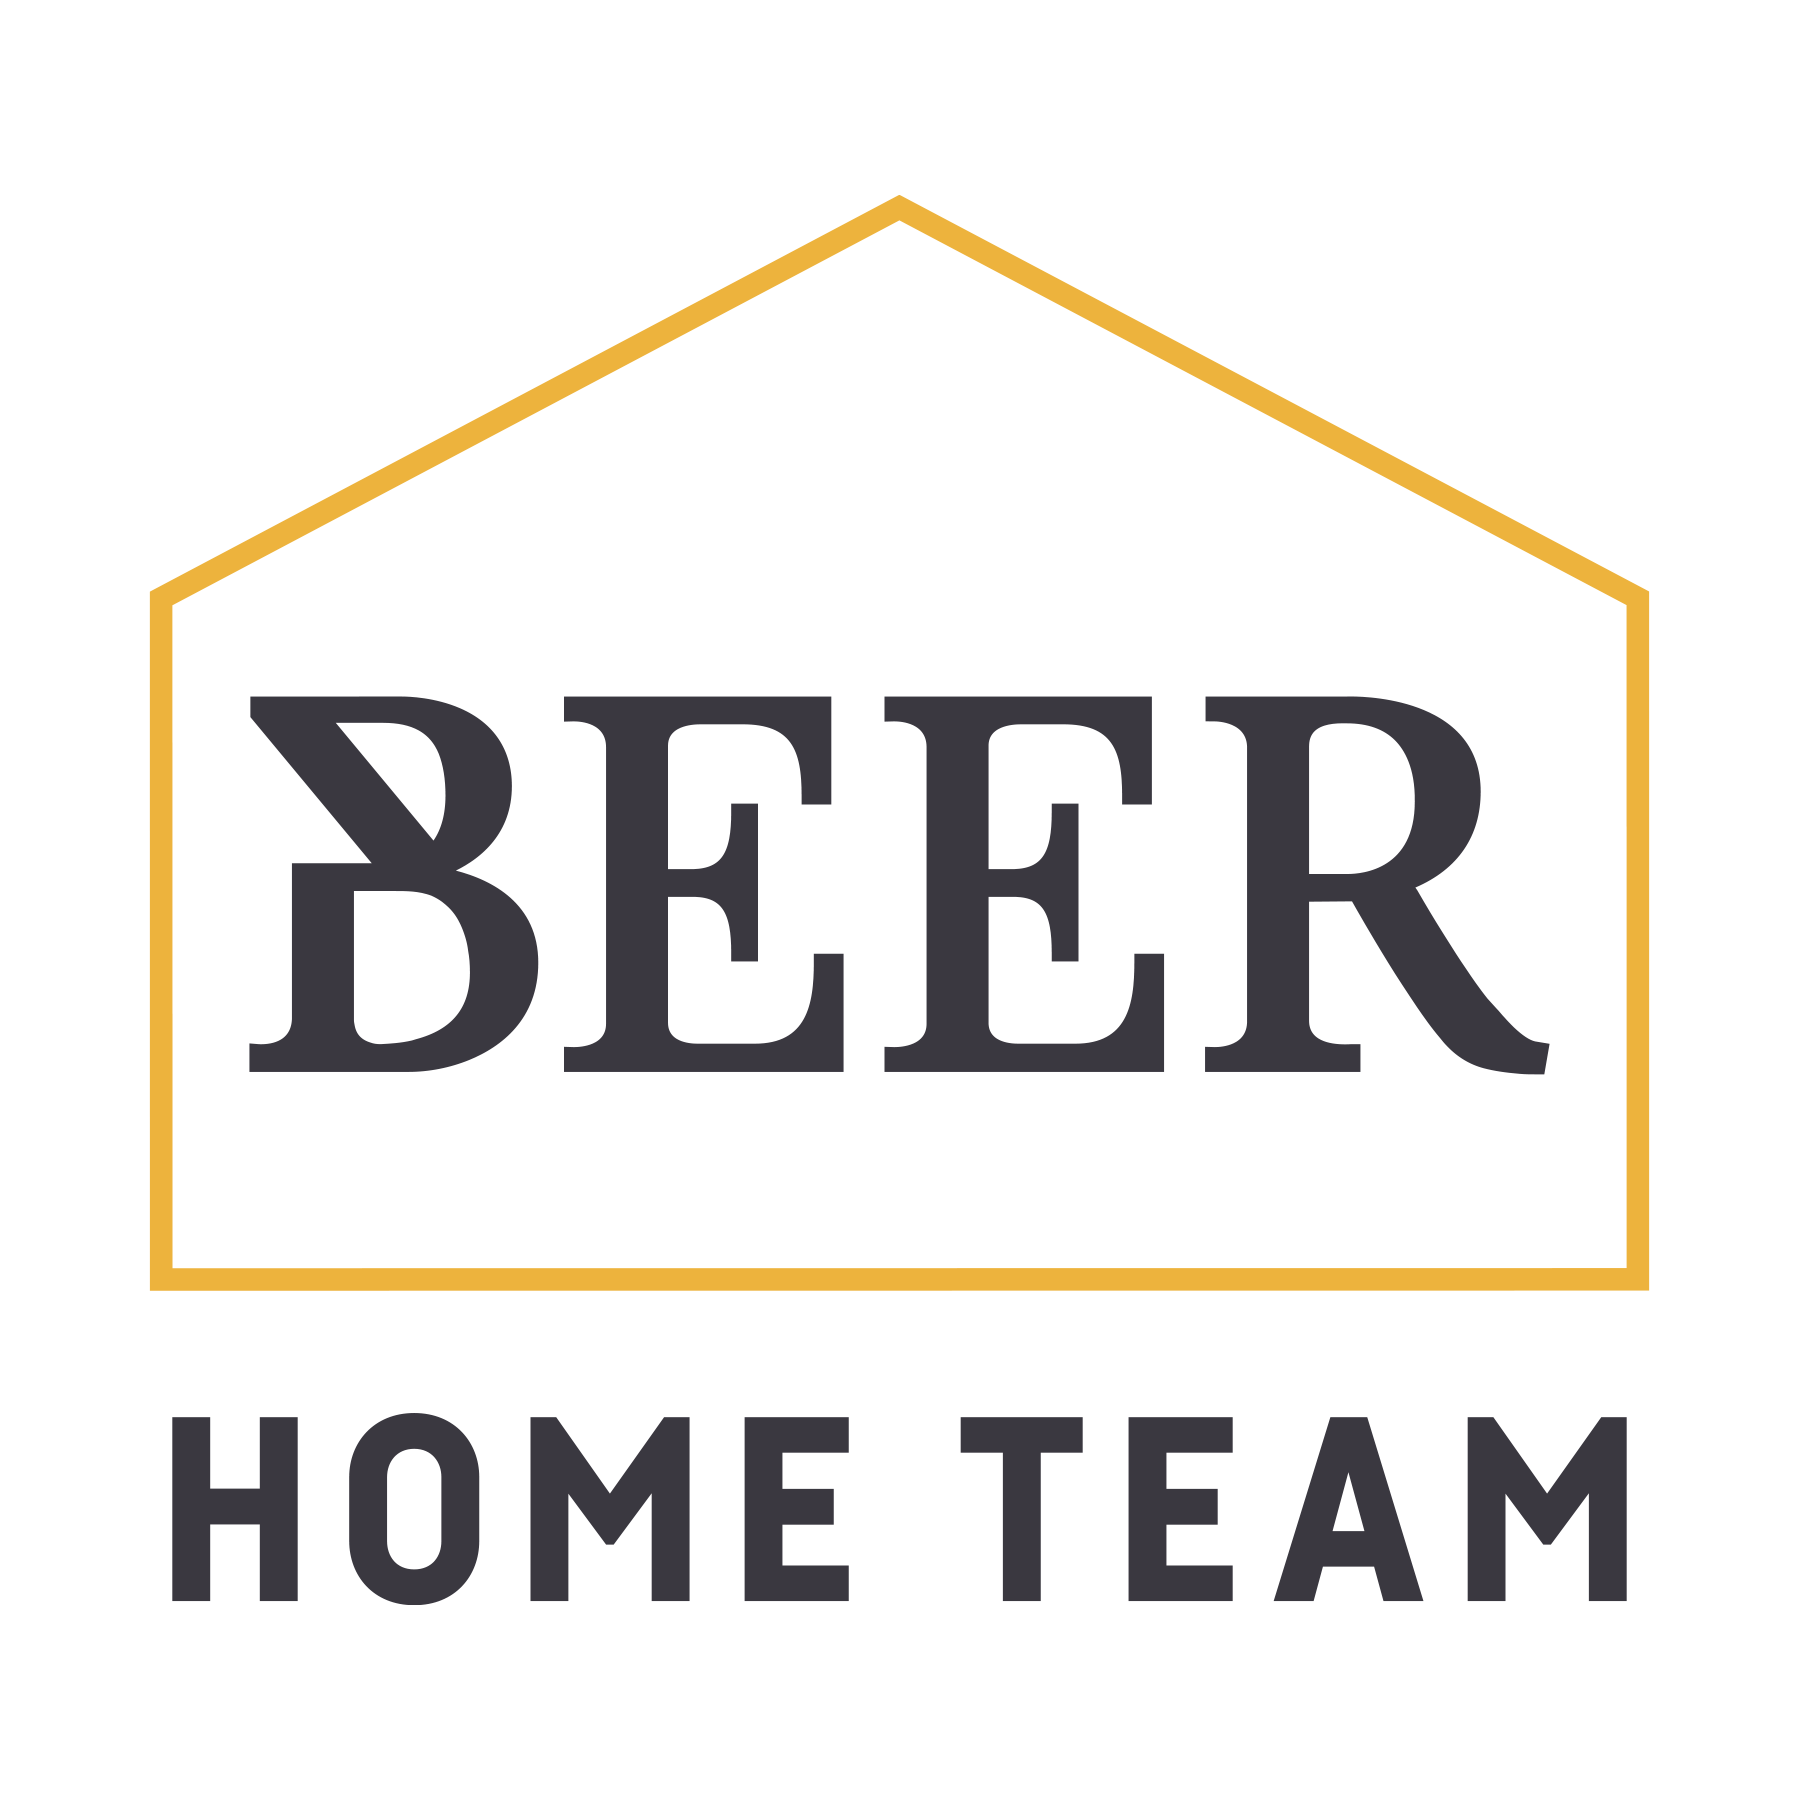 Beer Home Team LOGO - PNG.png